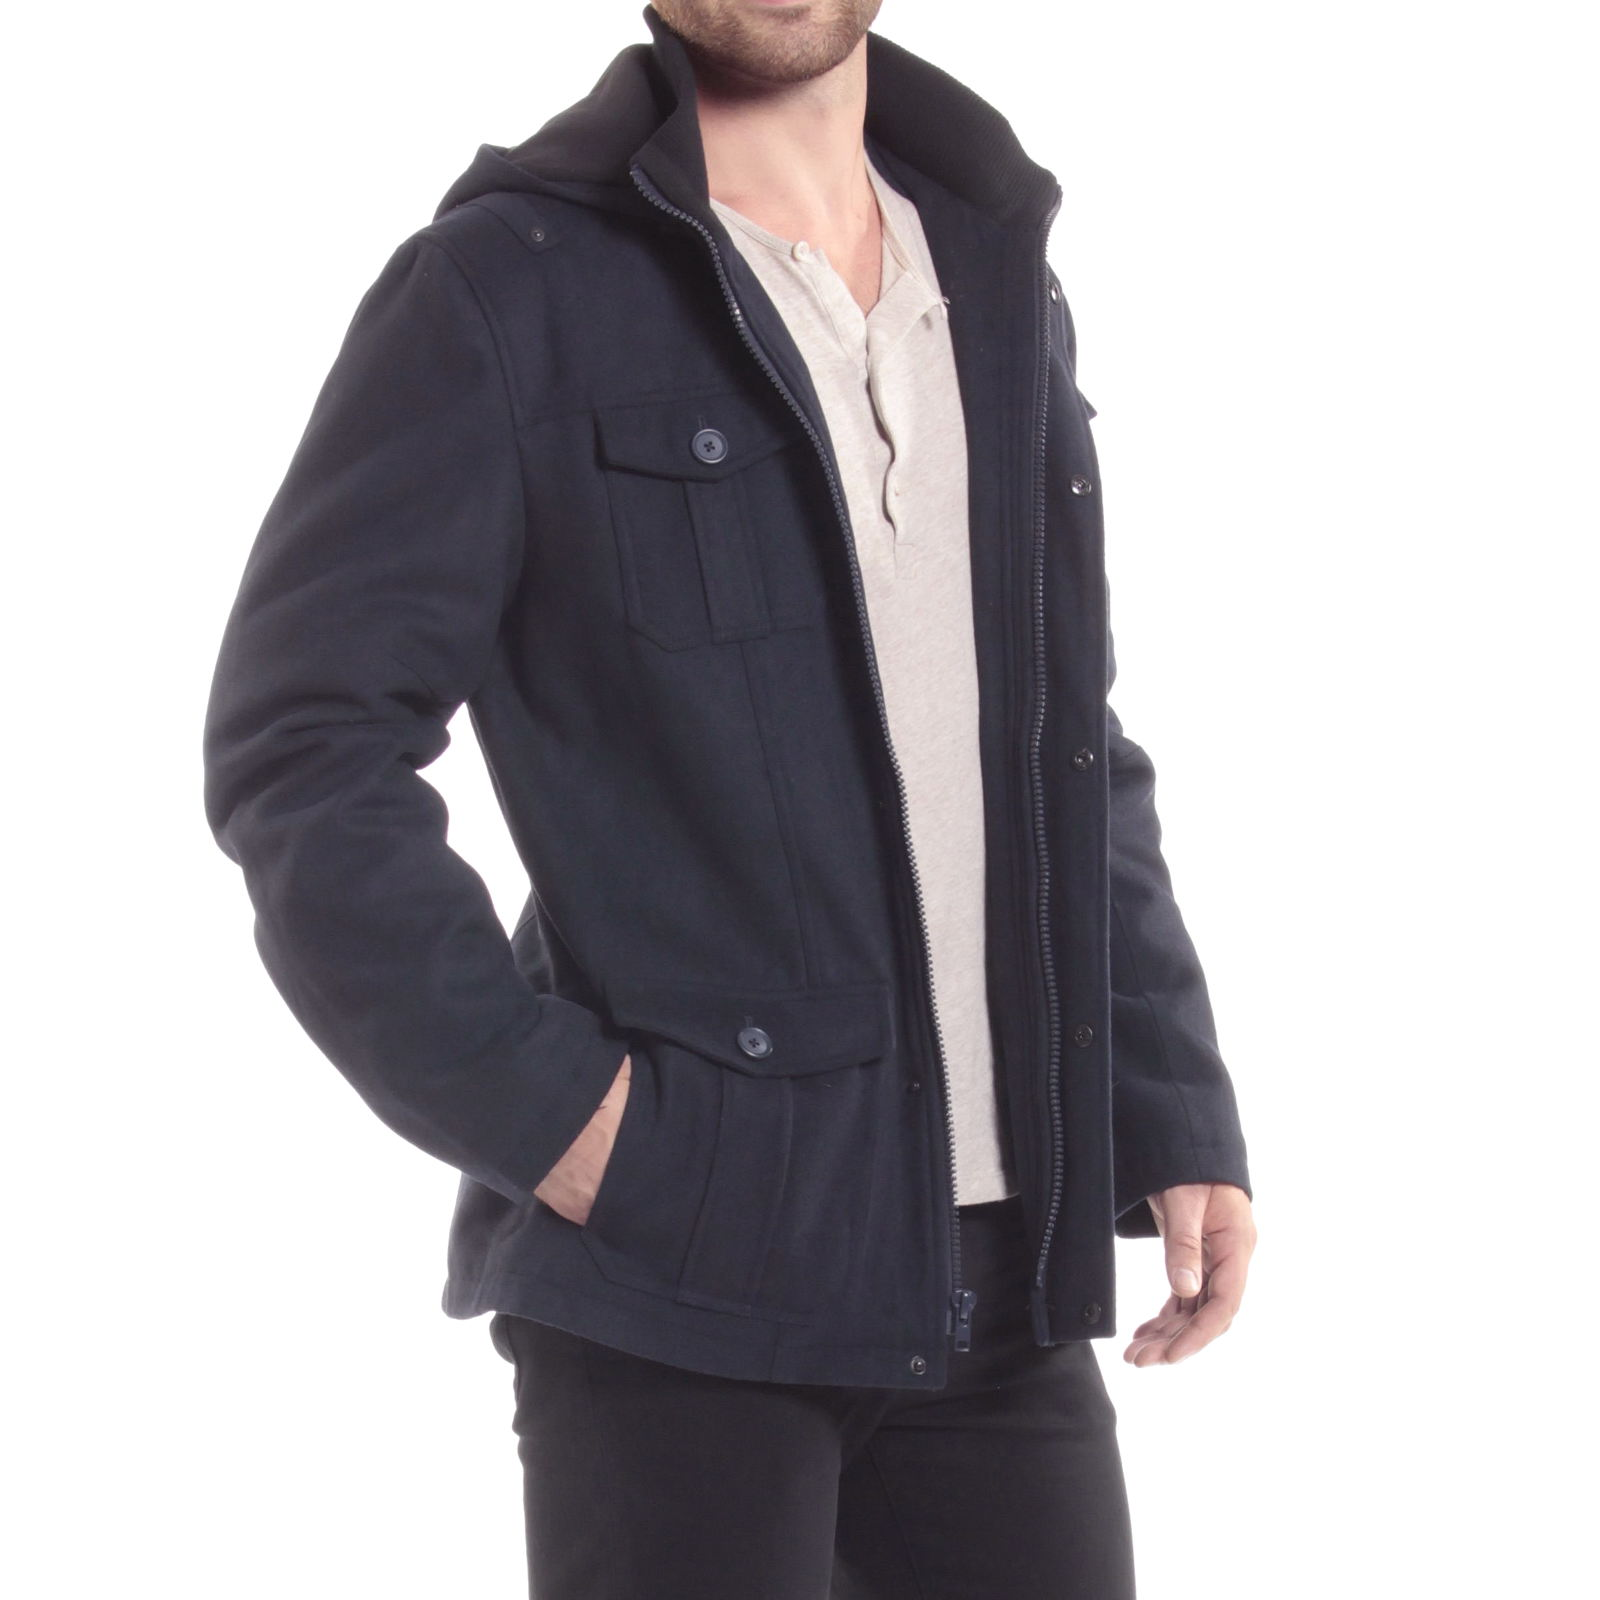 Alpine-Swiss-Noah-Mens-Wool-Coat-Parka-with-Removable-Hood-Jacket-Cargo-Pockets thumbnail 41